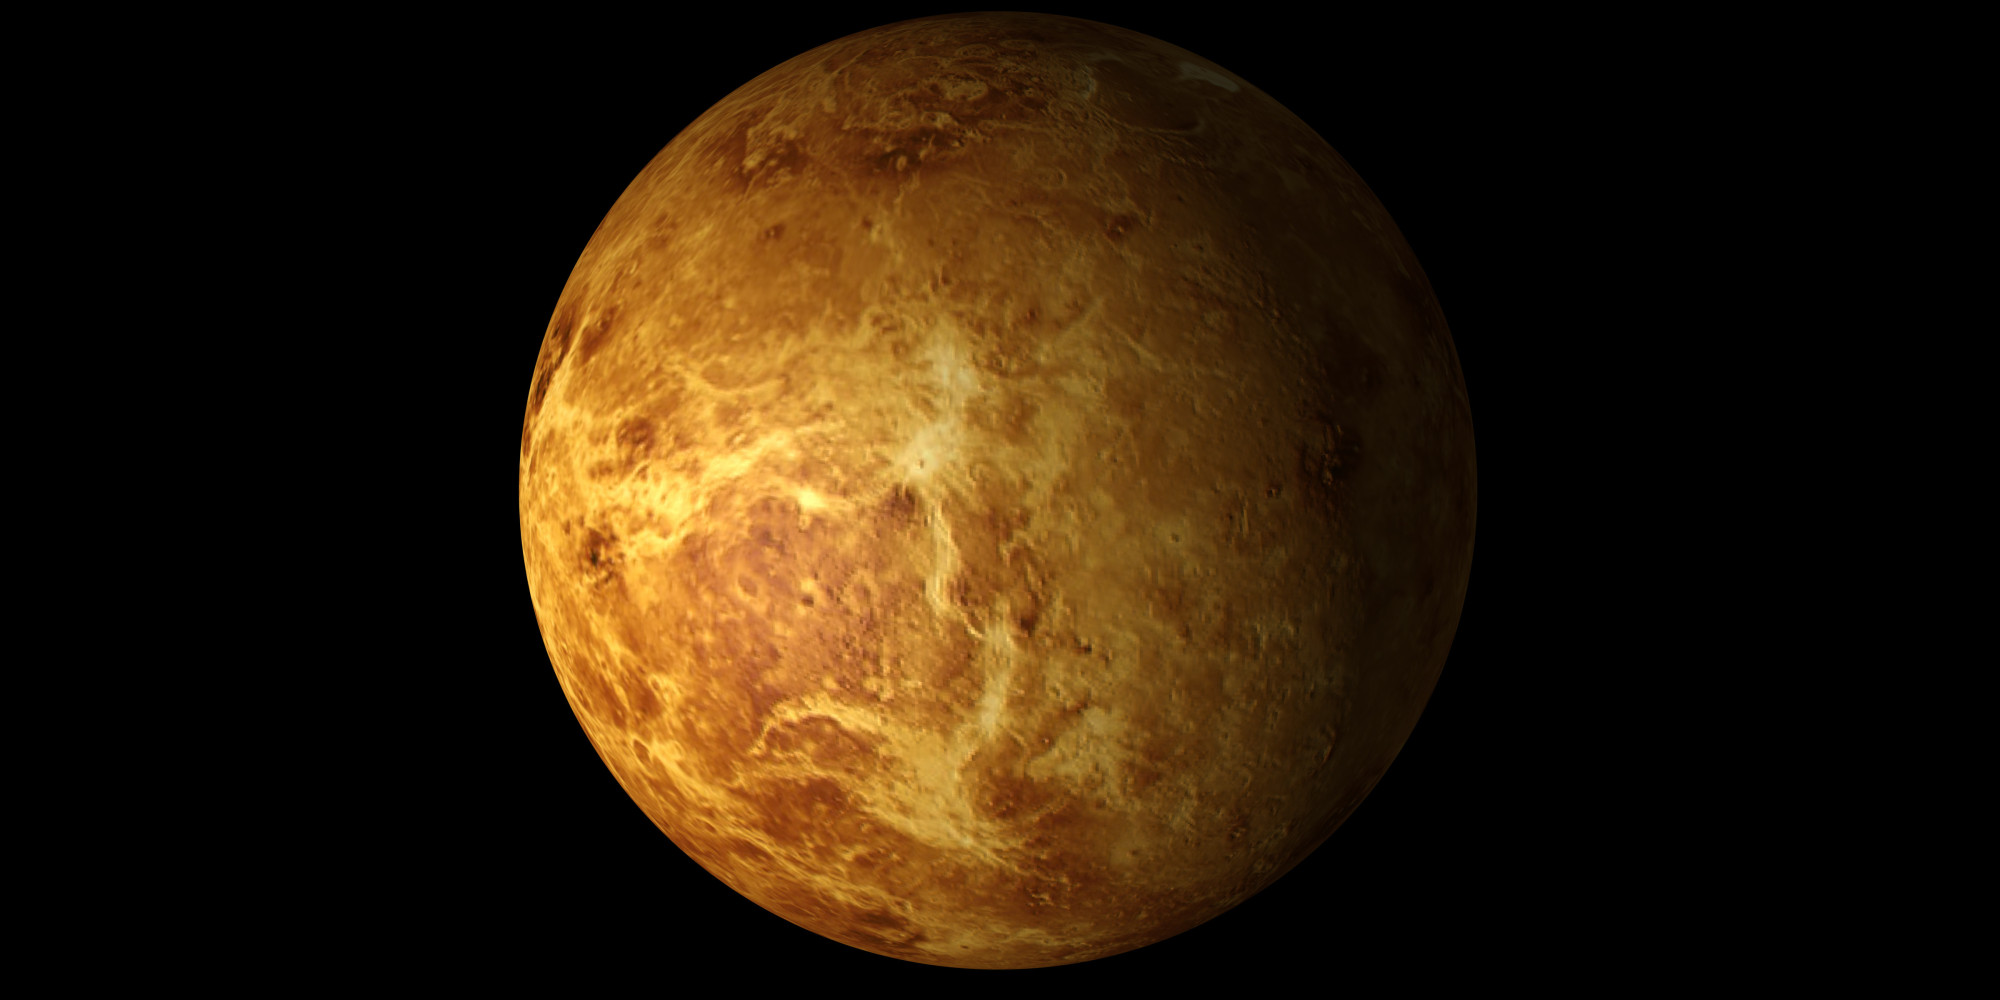 Scientists Are Thinking Of Ways To Terraform Venus: www.huffingtonpost.co.uk/2014/07/28/terraforming-venus_n_5626223.html